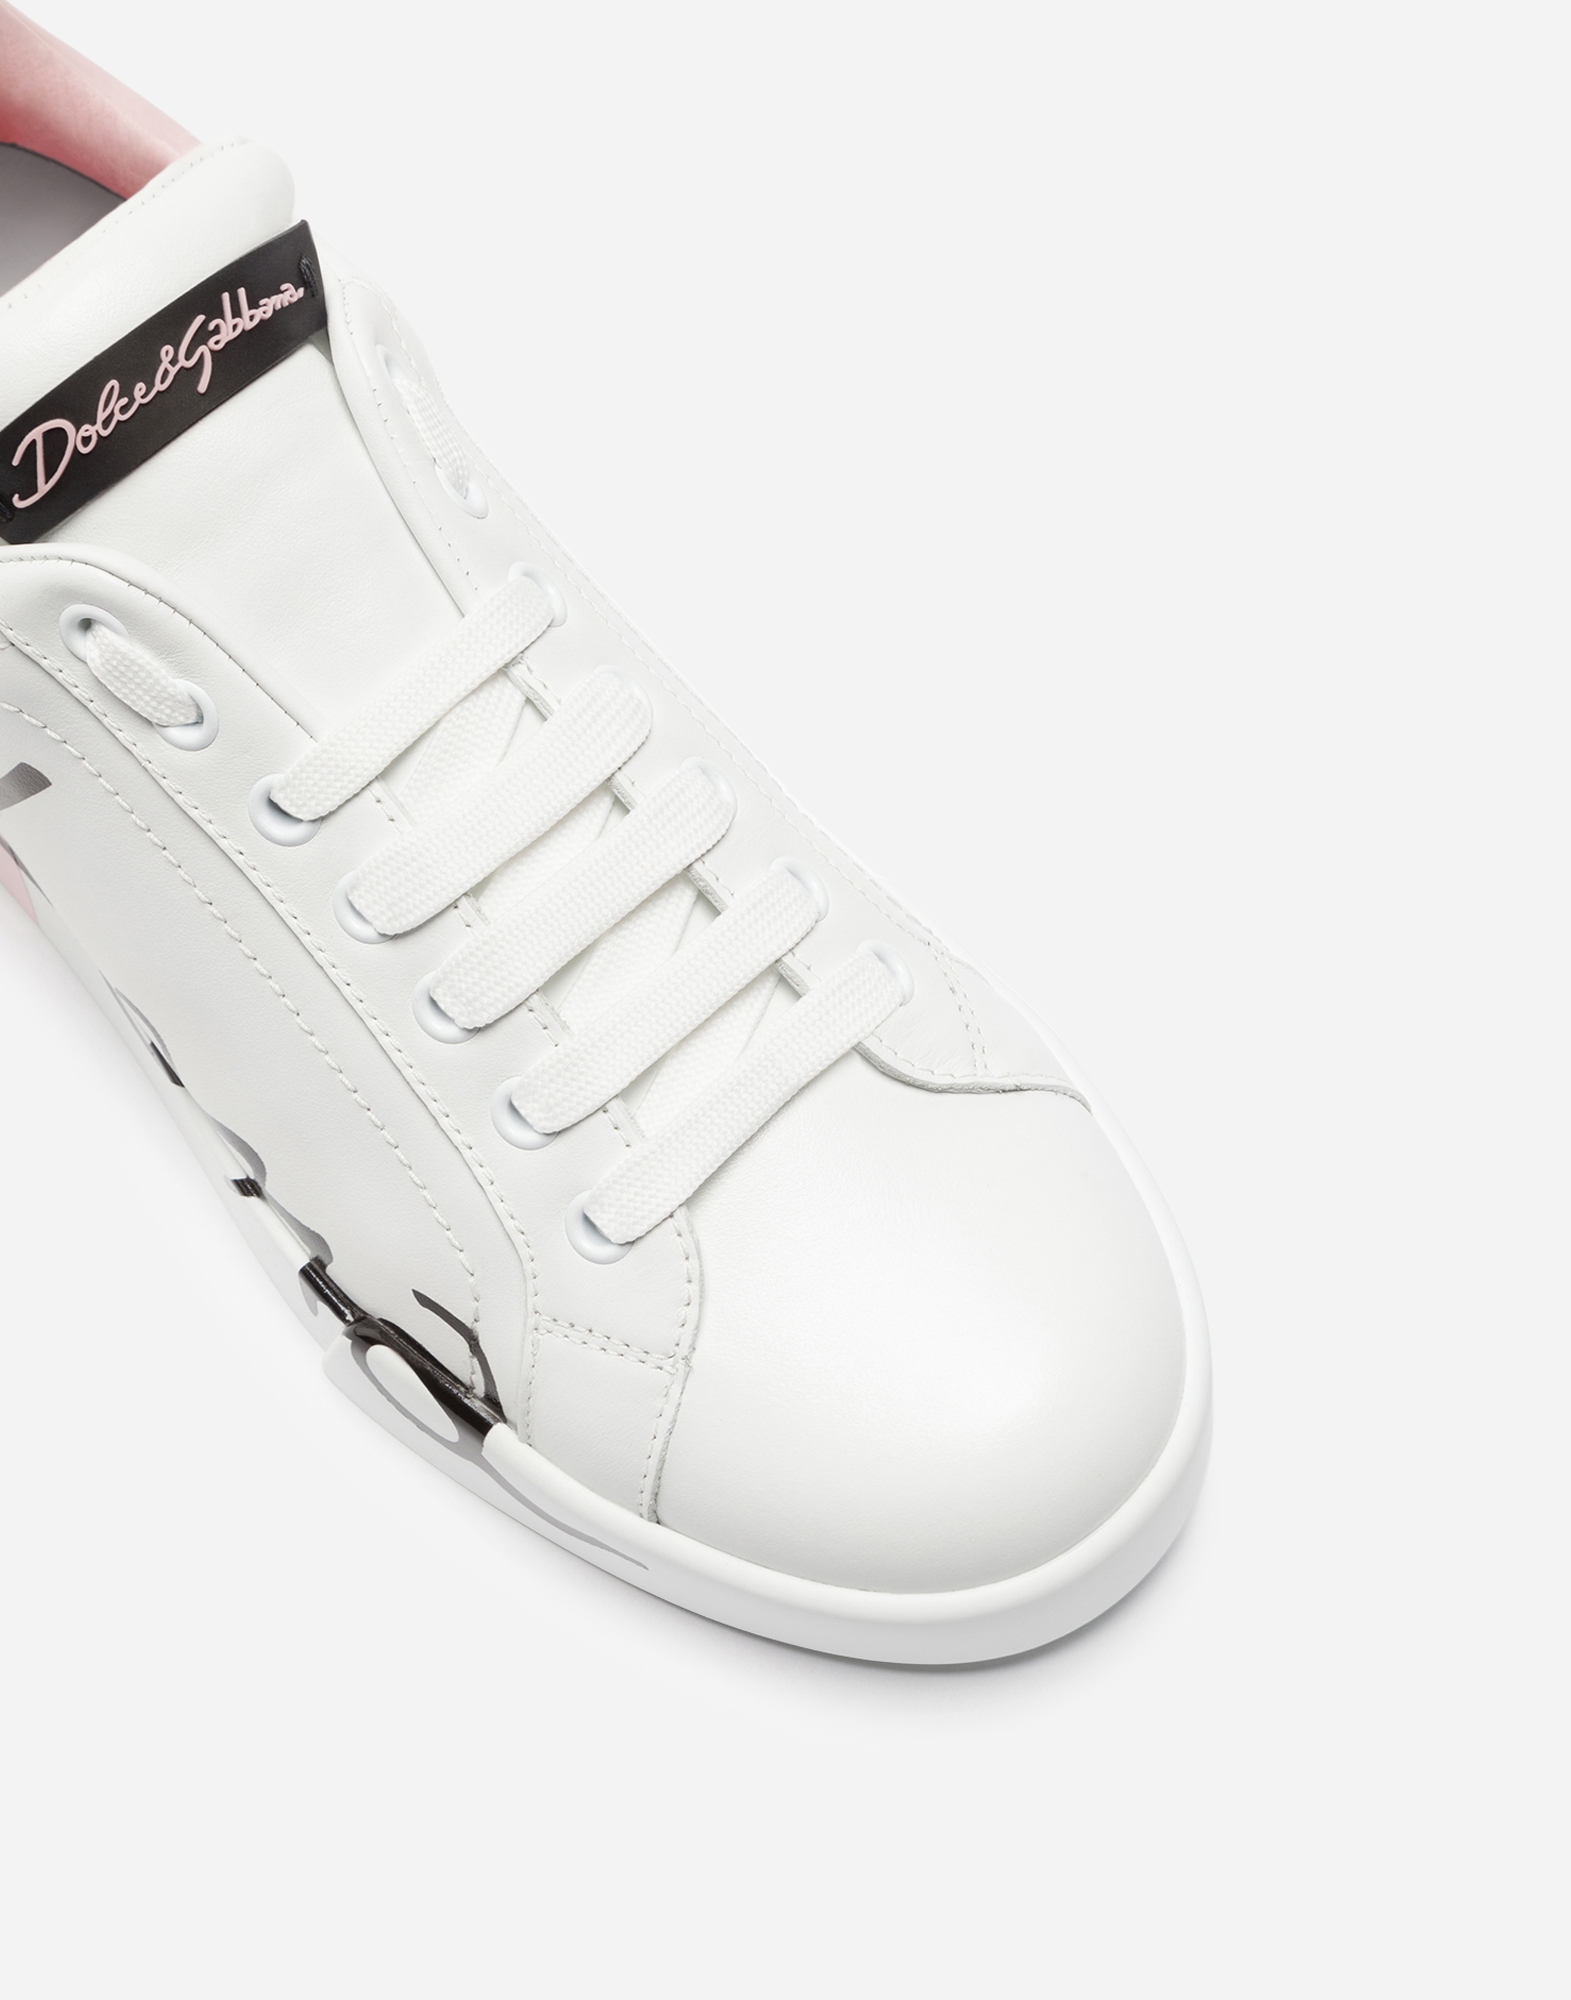 Dolce&Gabbana LEATHER PORTOFINO SNEAKERS WITH METALLIC HEEL